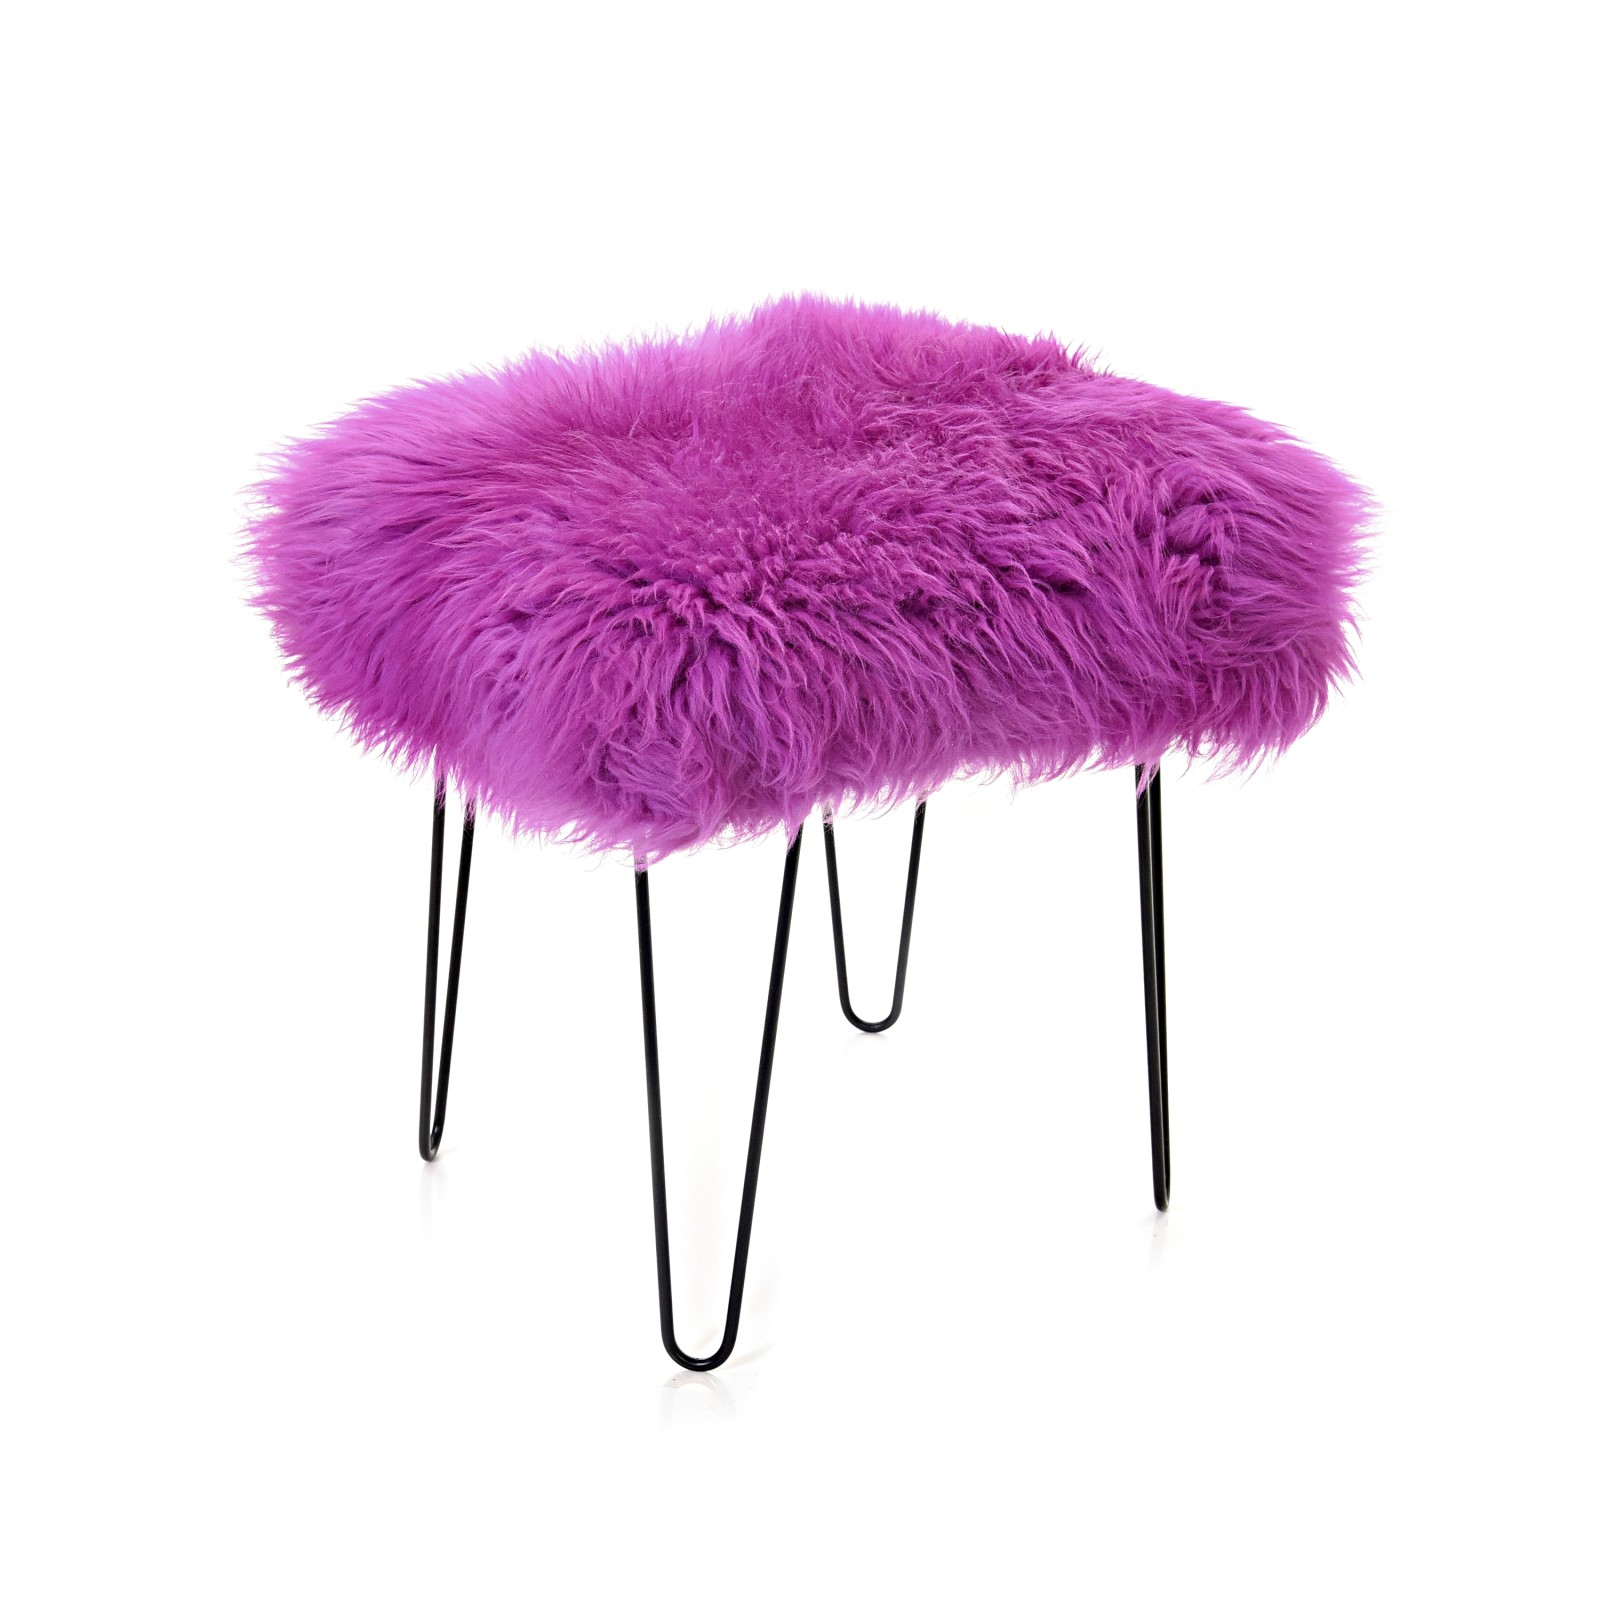 Sioned - Sheepskin Dressing Table Stool Cerise